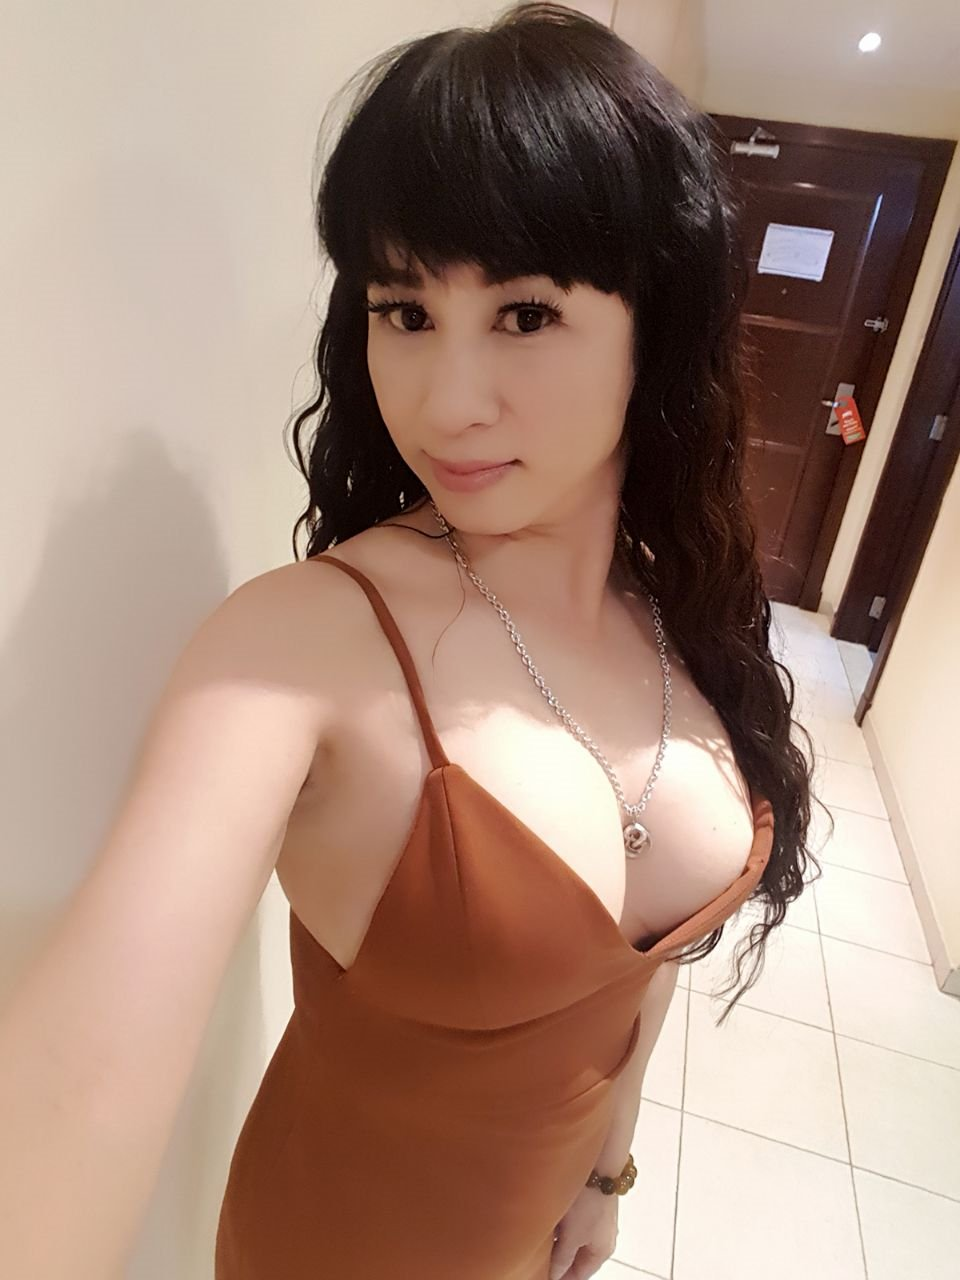 real nuru massage real escort date